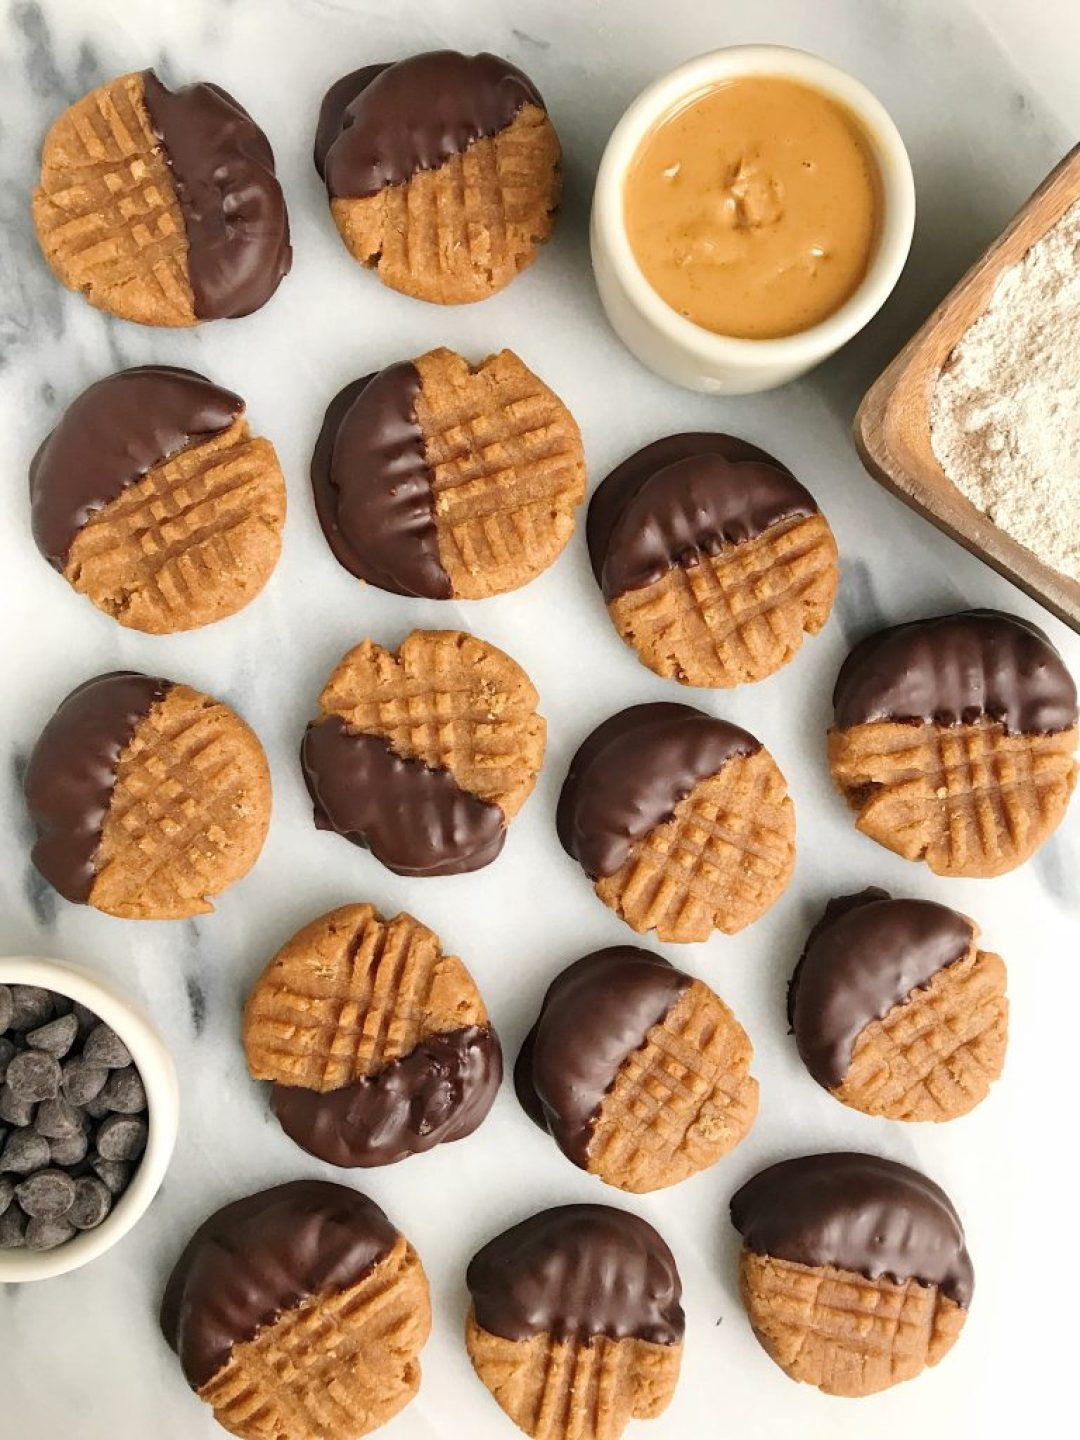 Chocolate Dipped Peanut Butter Cookies made with spelt flour for a healthier vegan cookie!